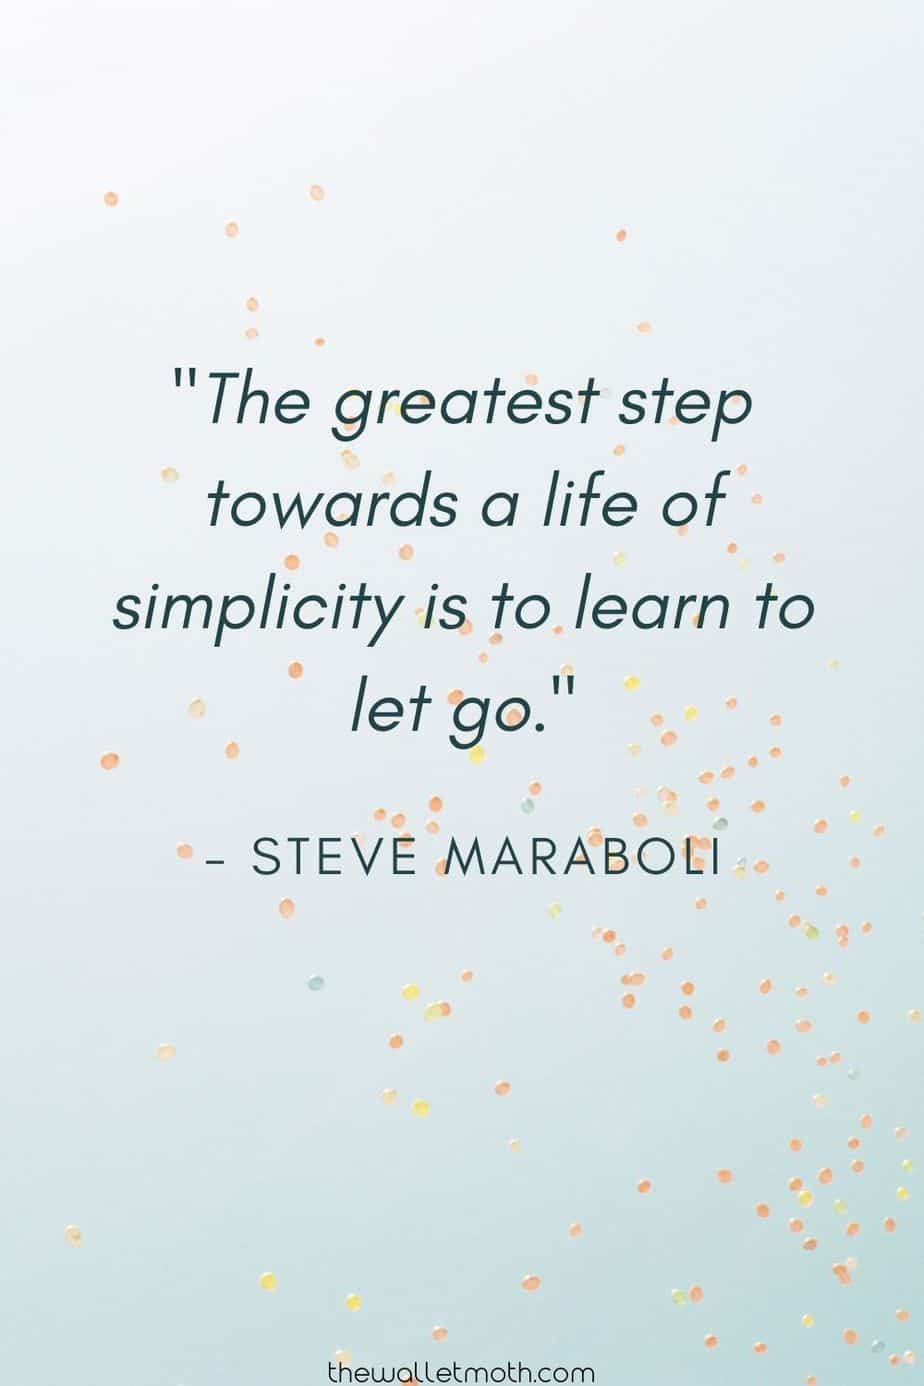 """The greatest step towards a life of simplicity is to learn to let go."" - Steve Maraboli"